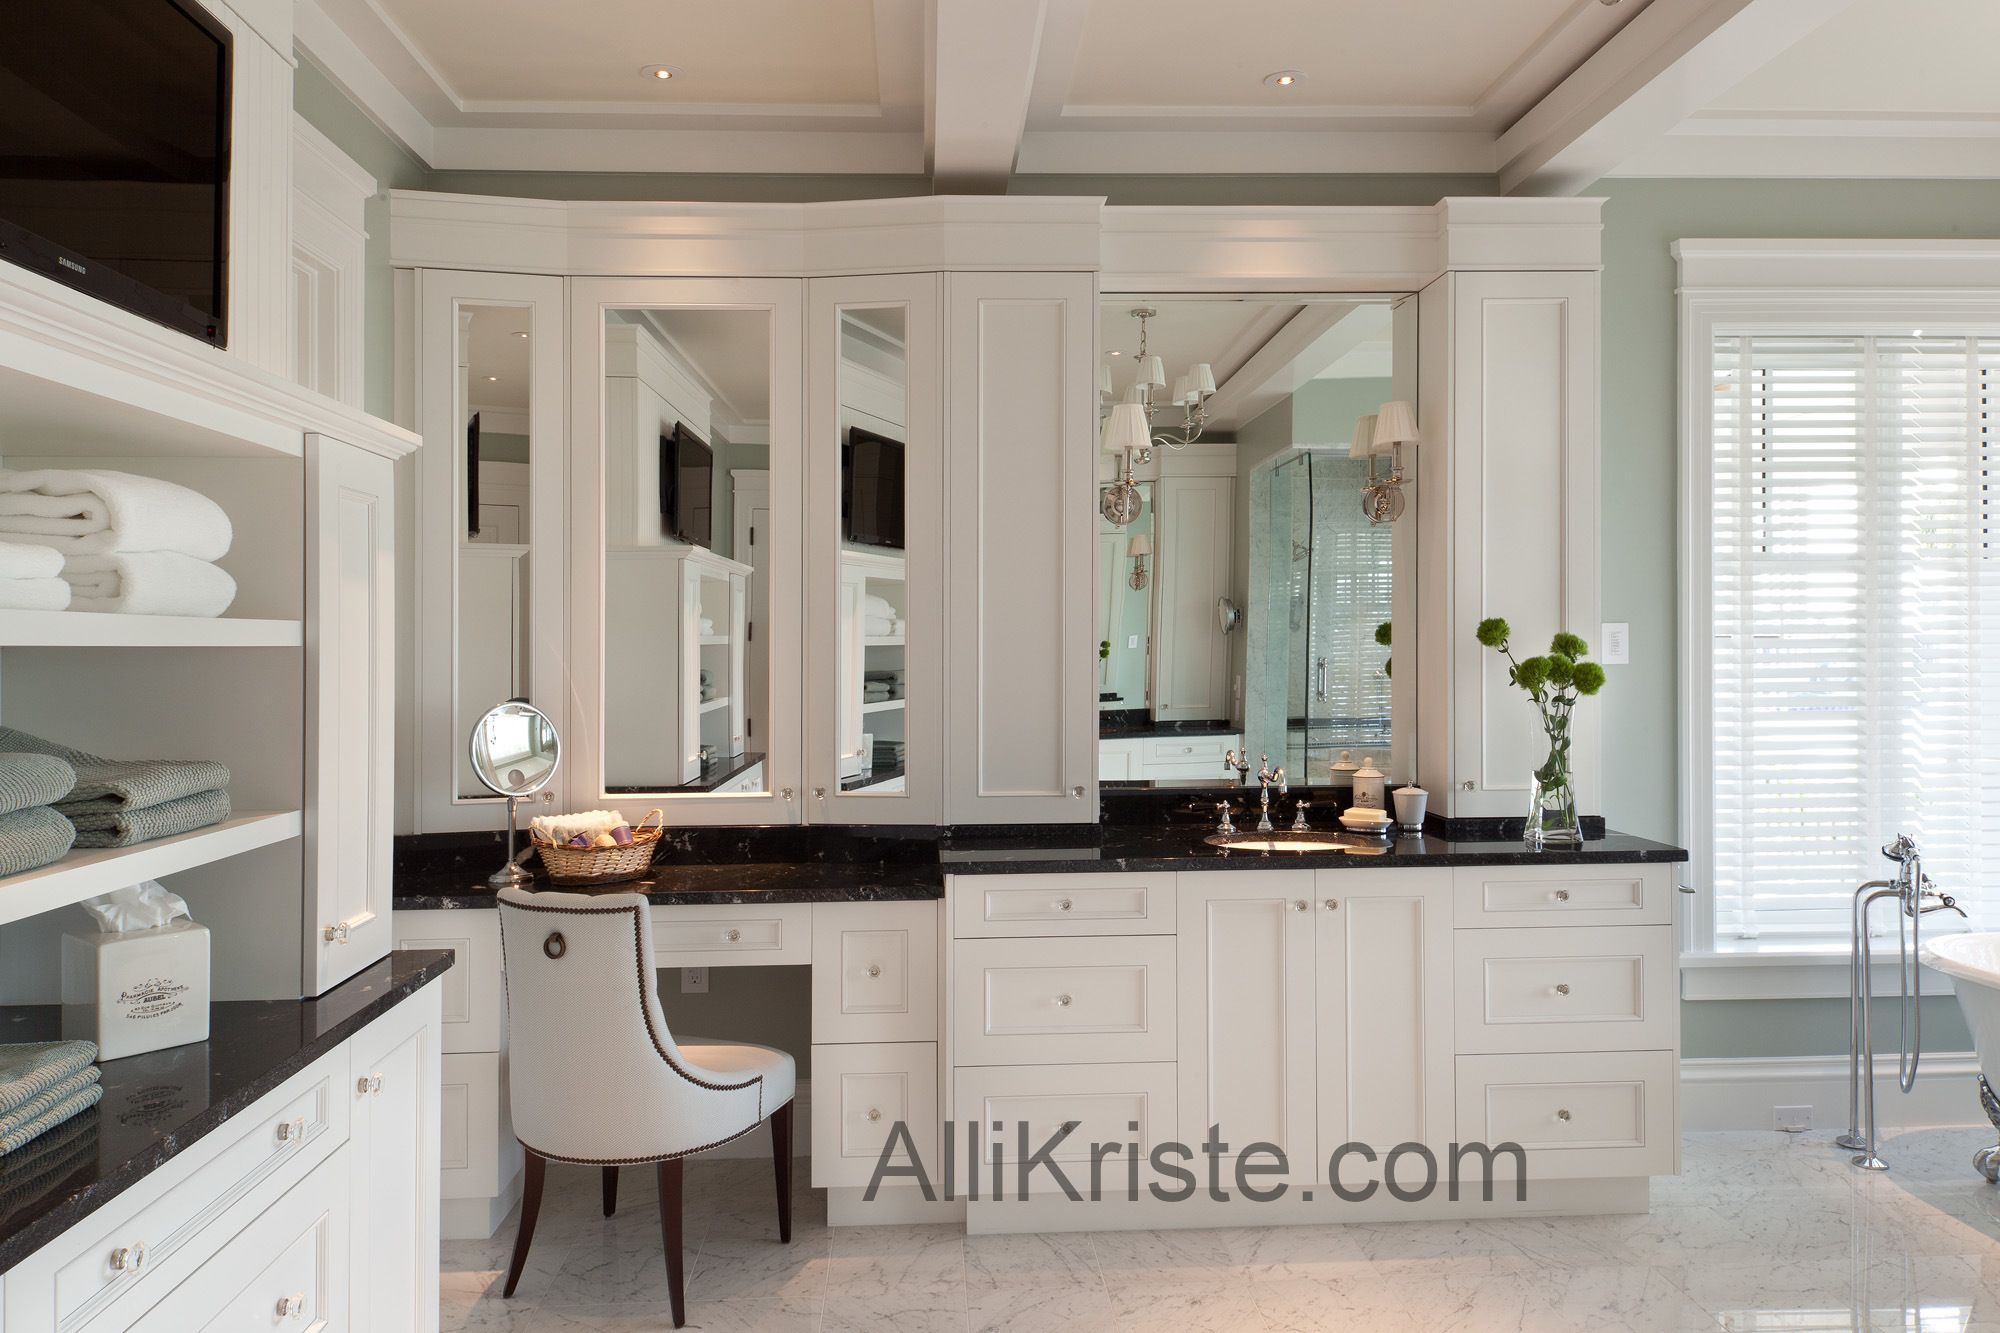 Custom Cabinetry for your Master Bathroom! #design #cabinets